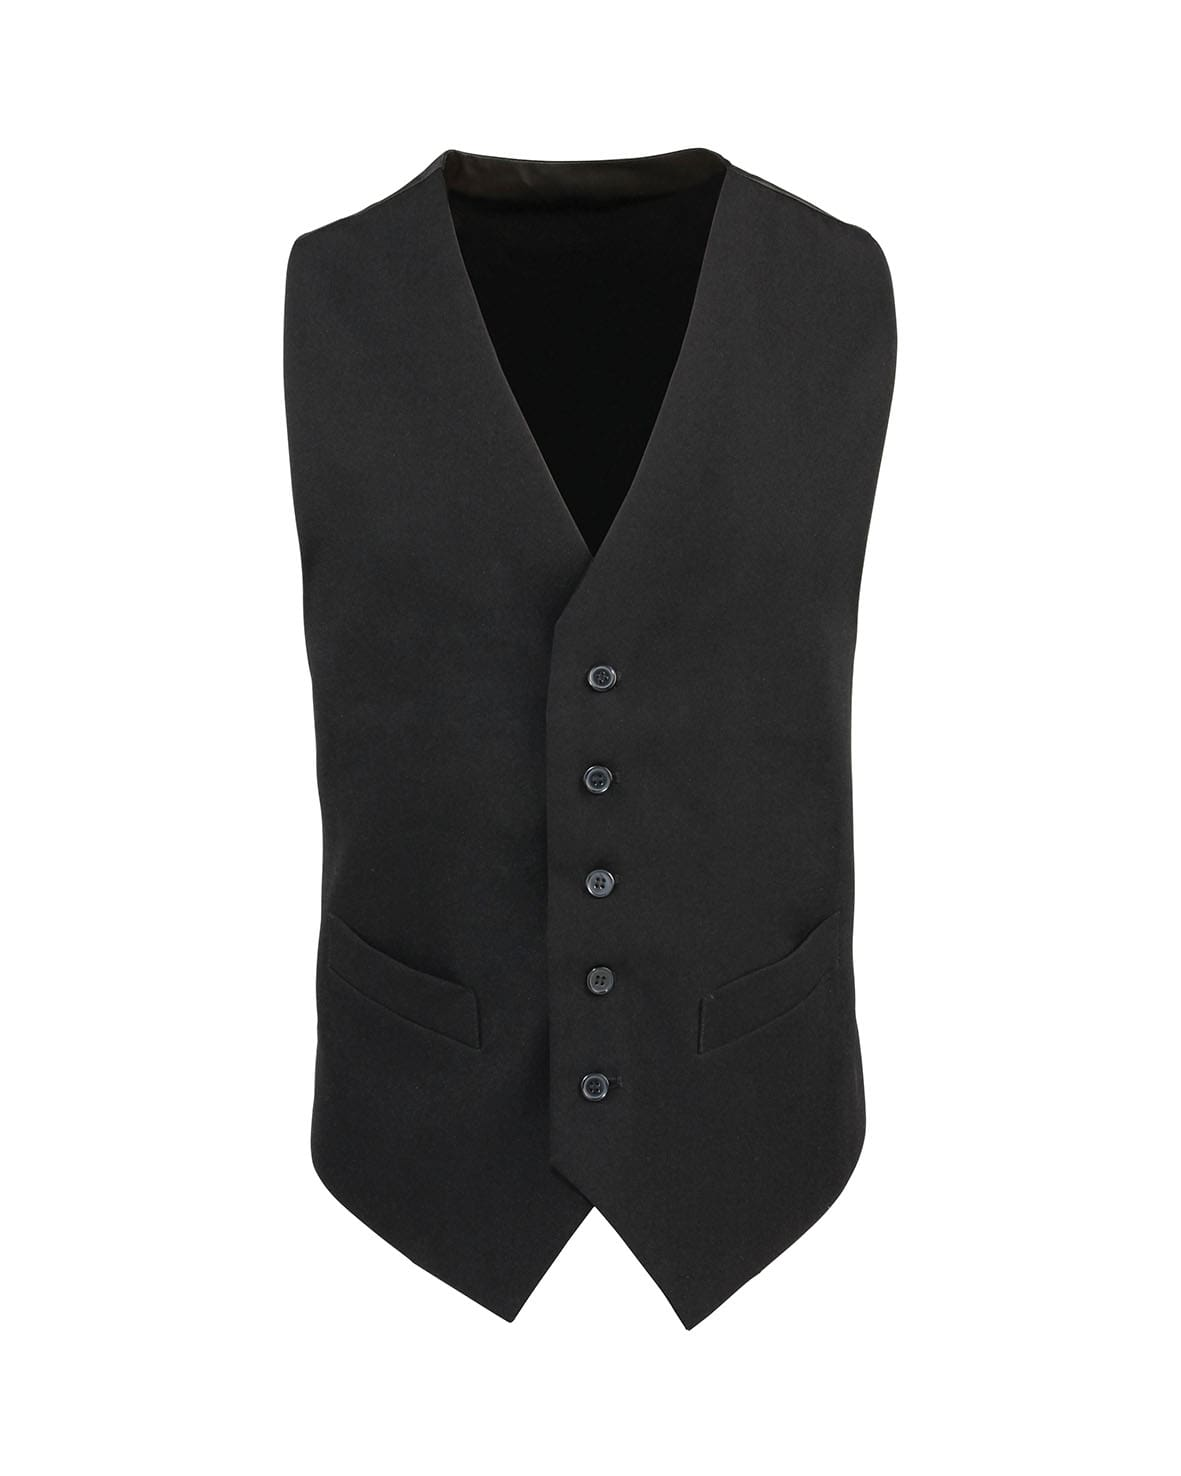 Smart Workwear Essentials - Functional and Stylish Waistcoats Branded with Your Business Logo with a wide colour choice of smart ties